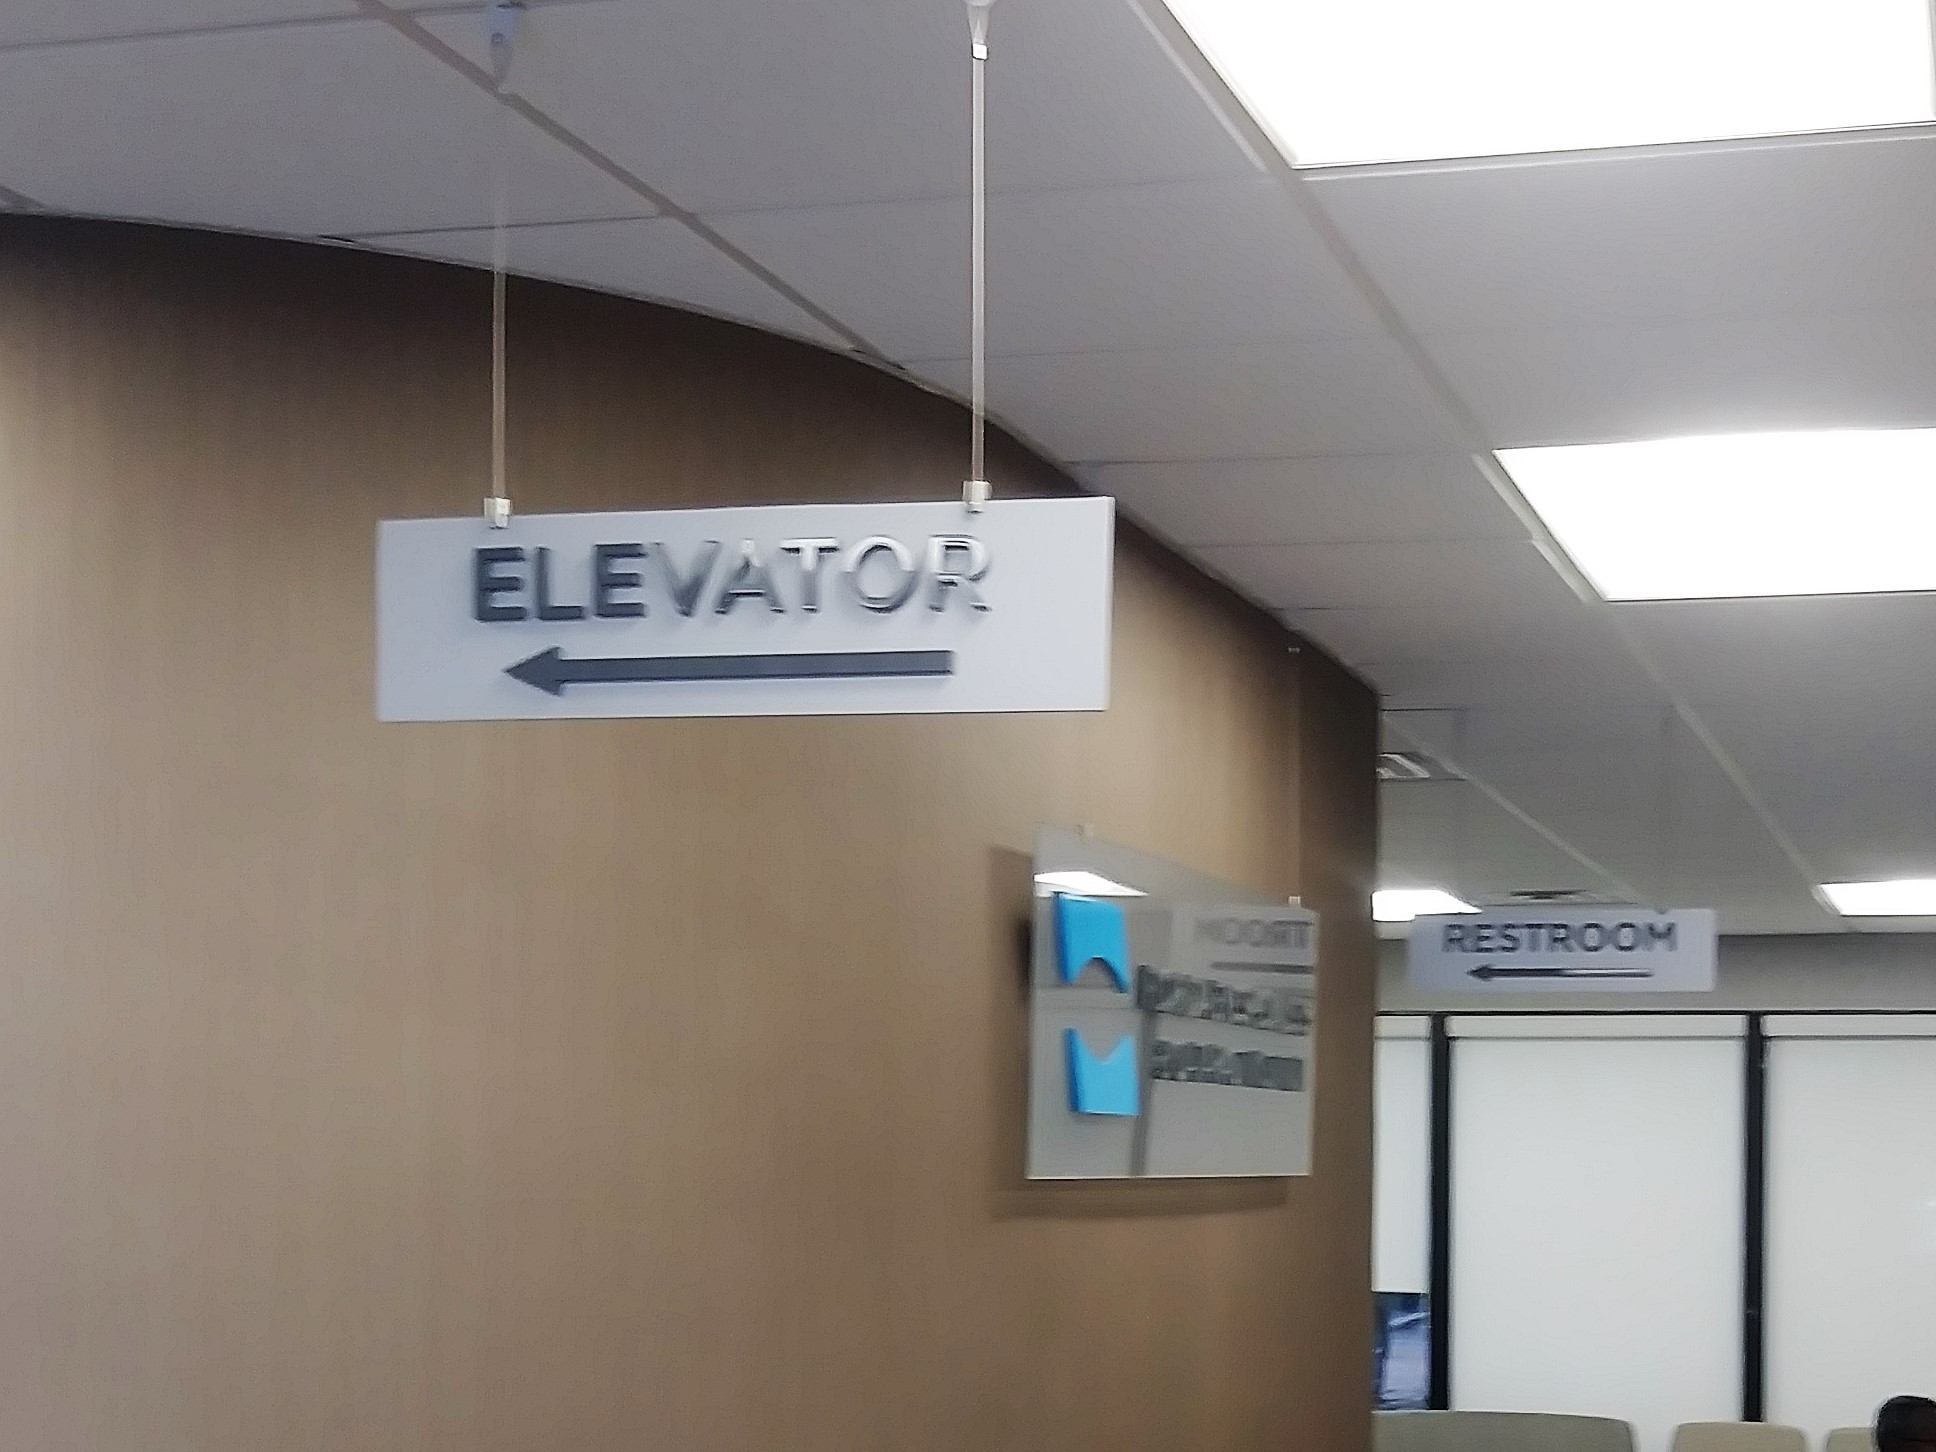 Tampa Fl Interior Exterior Hanging Signs Brackets From Poles Ceilings